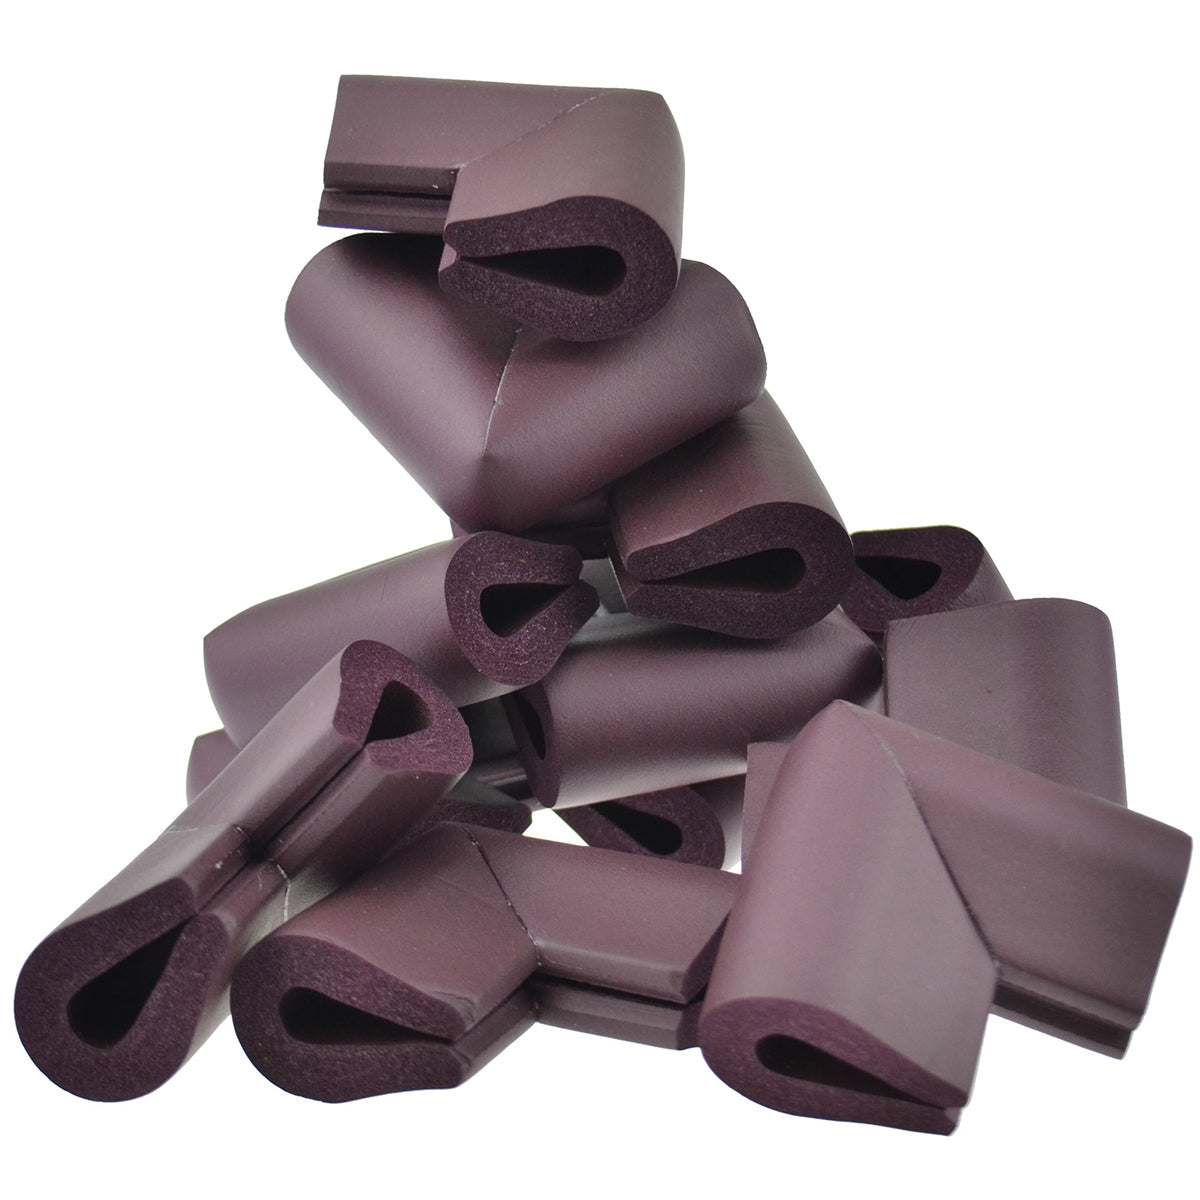 12 pieces randomly placed maroon u-shaped foam corner protectors show with a white background.